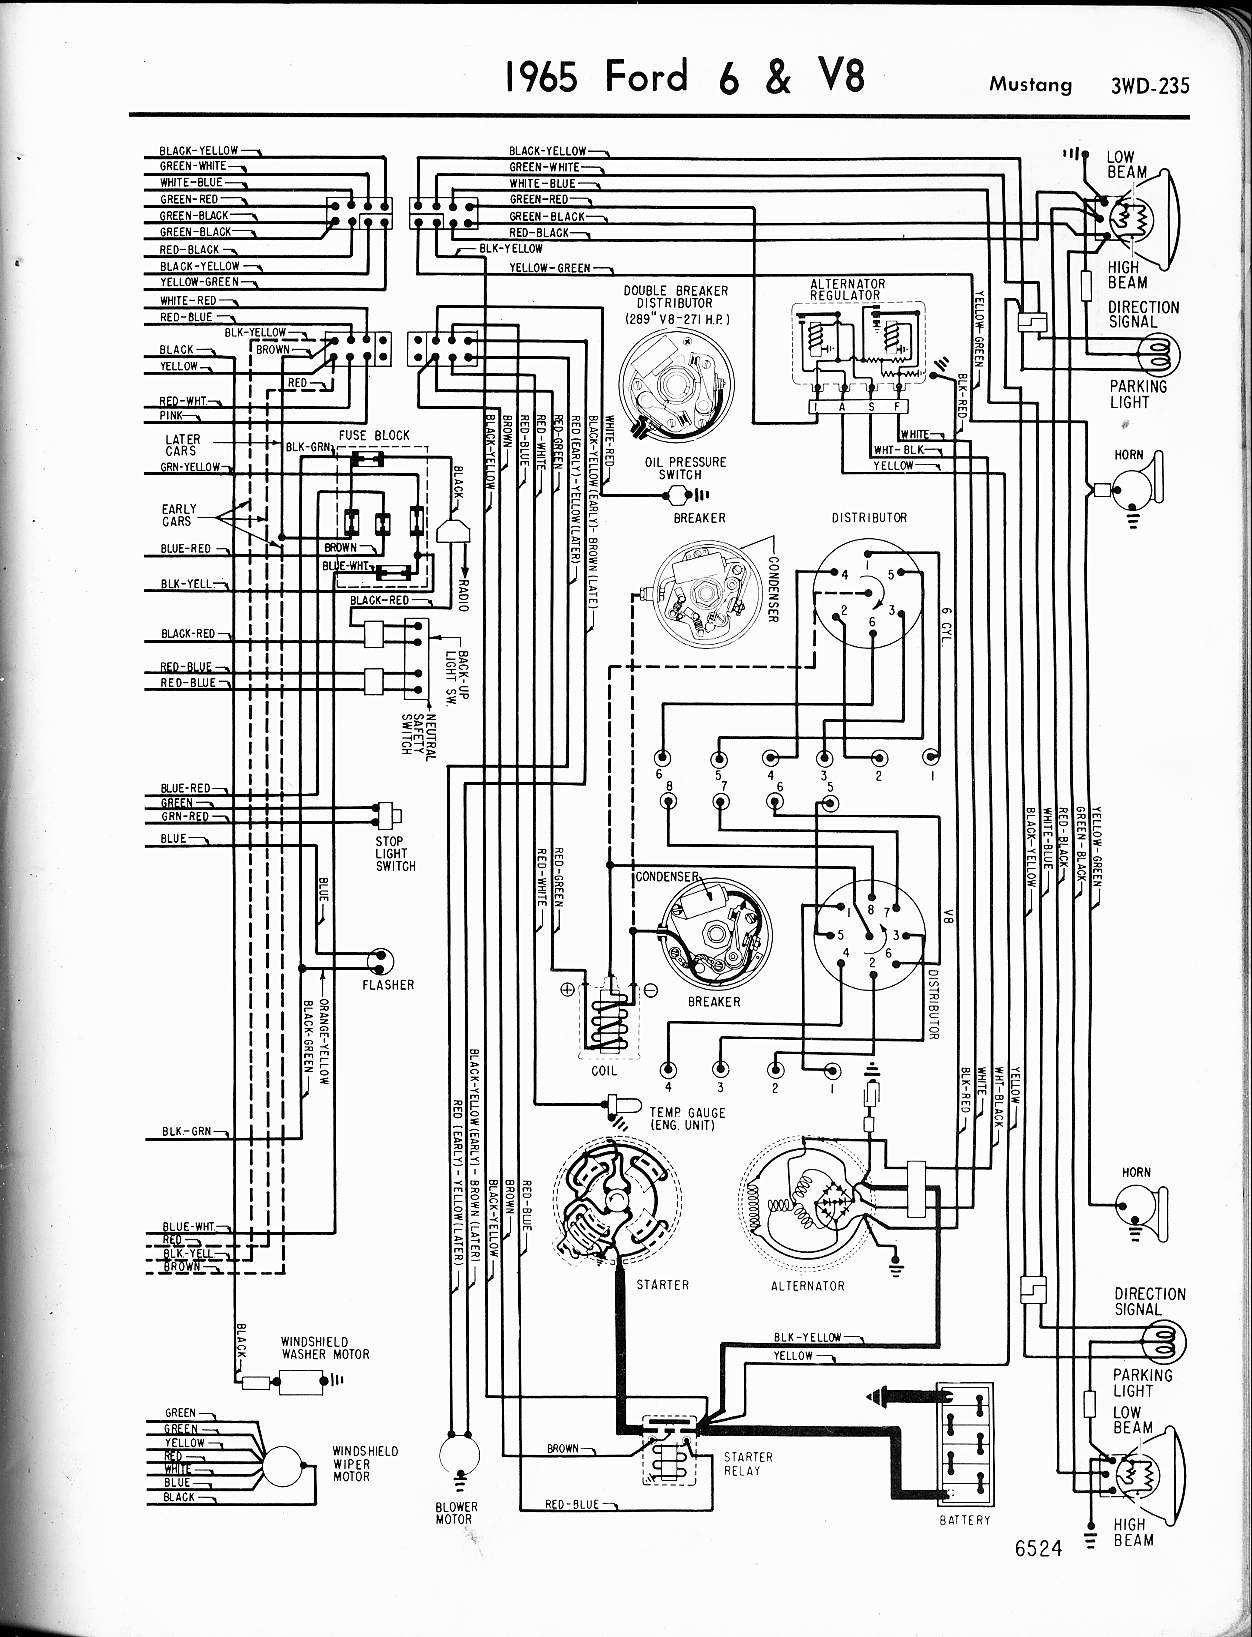 1965_mustang_wiring_2 ford diagrams ford mustang wiring diagram at gsmx.co